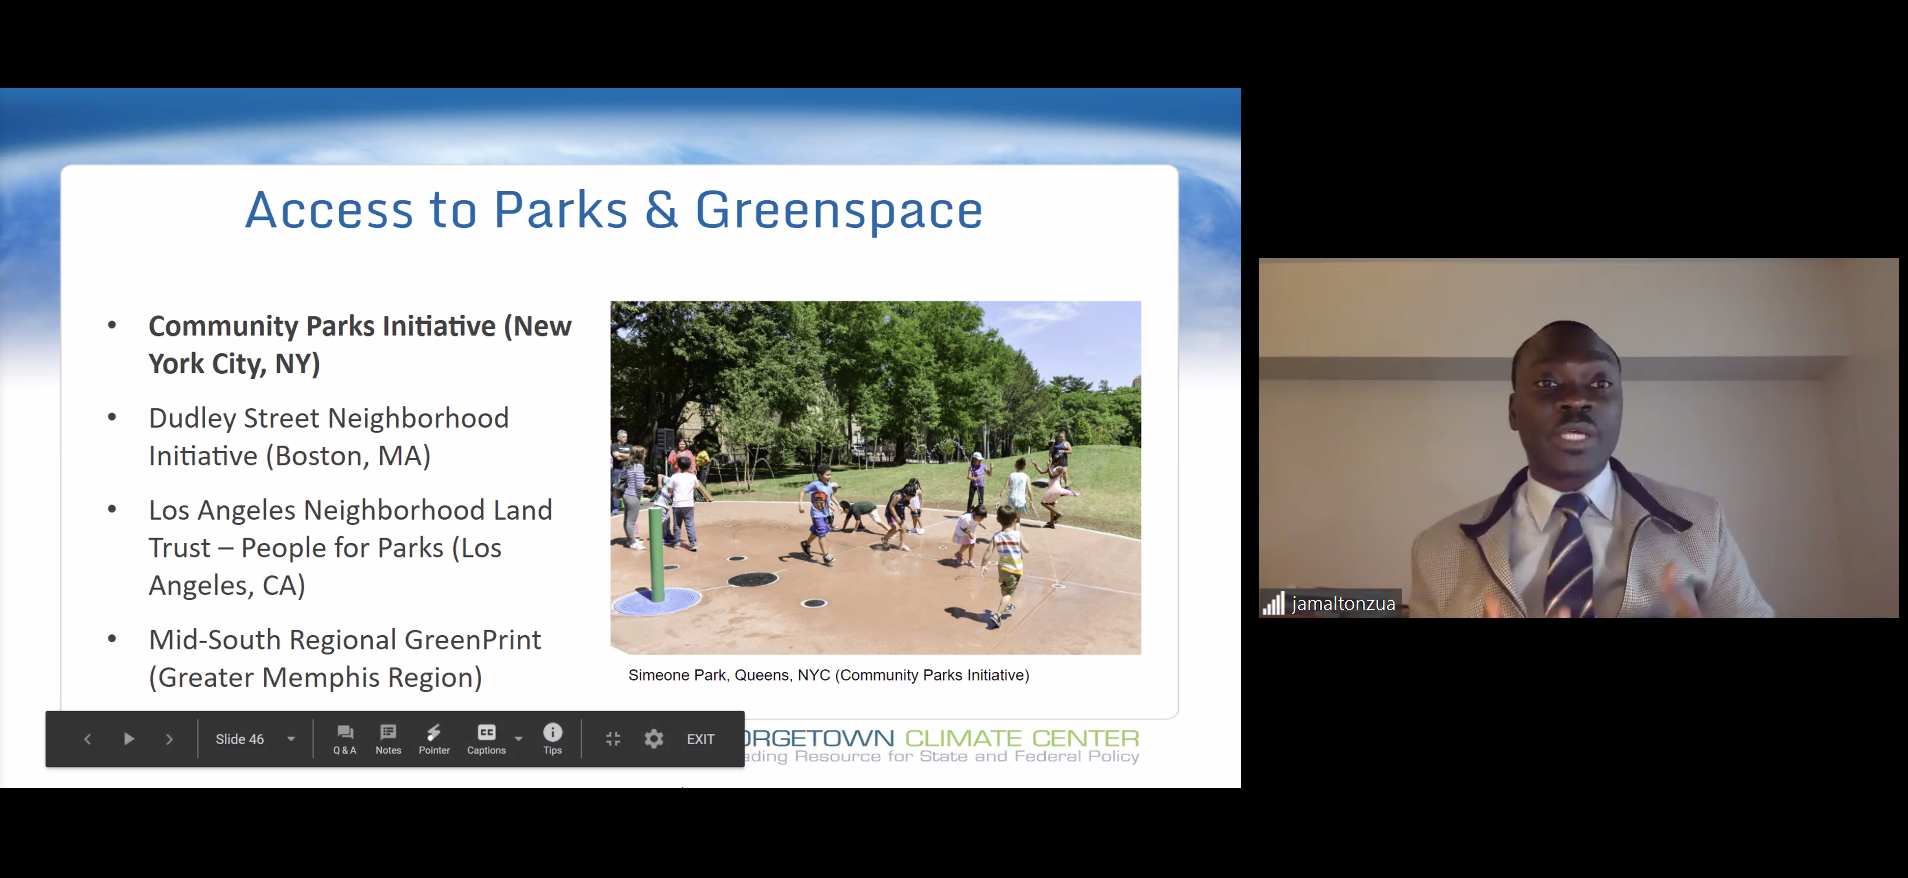 "A split screen image: On the right, Jamal Tonzua discusses case studies on equitable adaptation. On the left, a powerpoint slide is titled: ""Access to Parks & Greenspace"" and lists the following examples of greenspace case studies: Community Parks Initiative (New York City, NY); Dudley Street Neighborhood Initiative (Boston, MA); Los Angeles Neighborhood Land Trust -- People for Parks (Los Angeles, CA); Mid-South Regional GreenPrint (Greater Memphis Region). The slide also shows a picture of children playing in sprinklers at a small water fixture surrounded by grass and trees in Simeone Park, Queens, NYC (part of the Community Parks Initiative)"